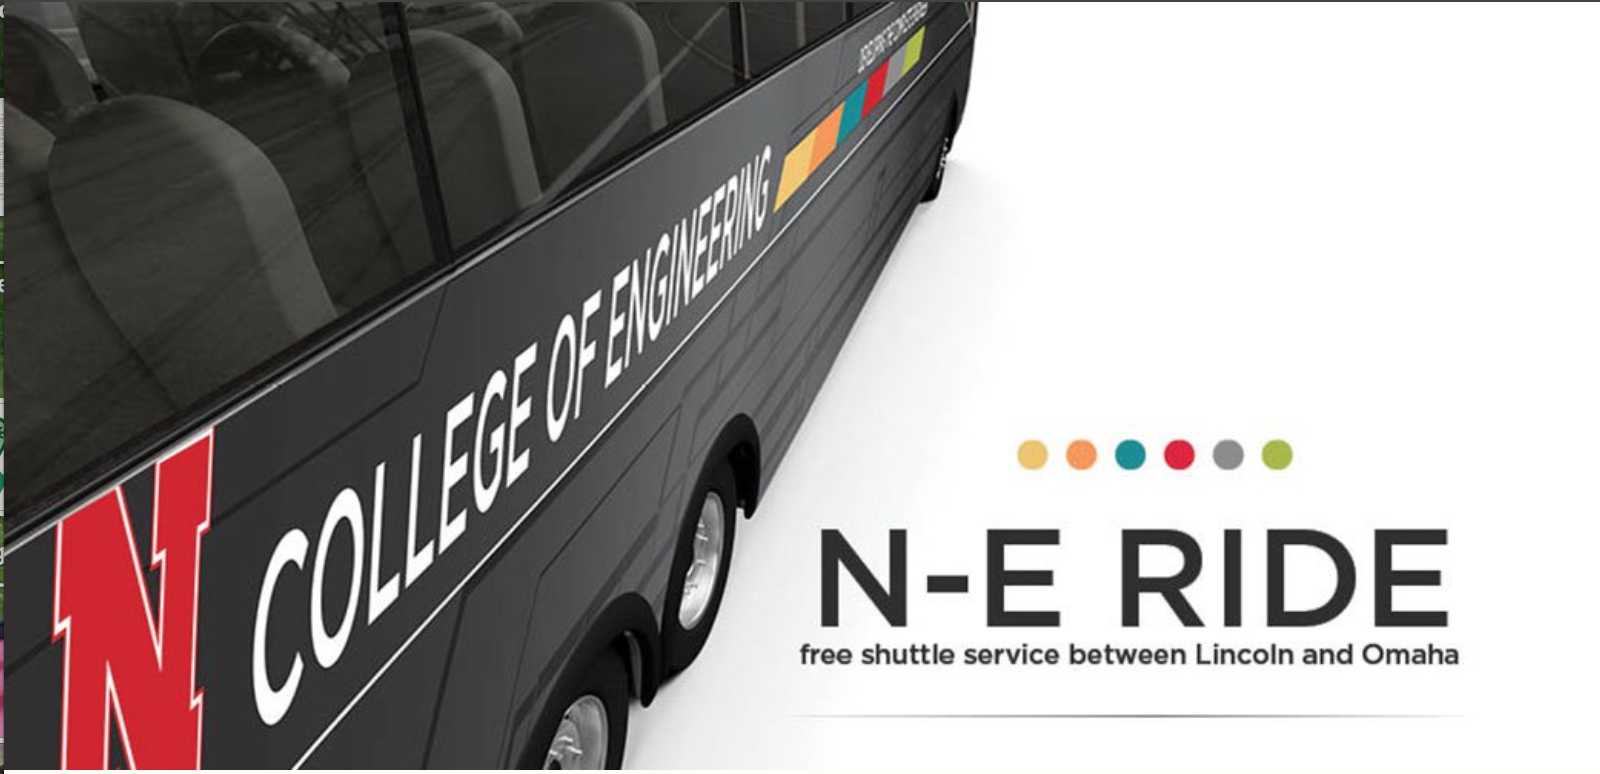 N-E Ride will have priority seating for its shuttle service on both March 15 and March 25.